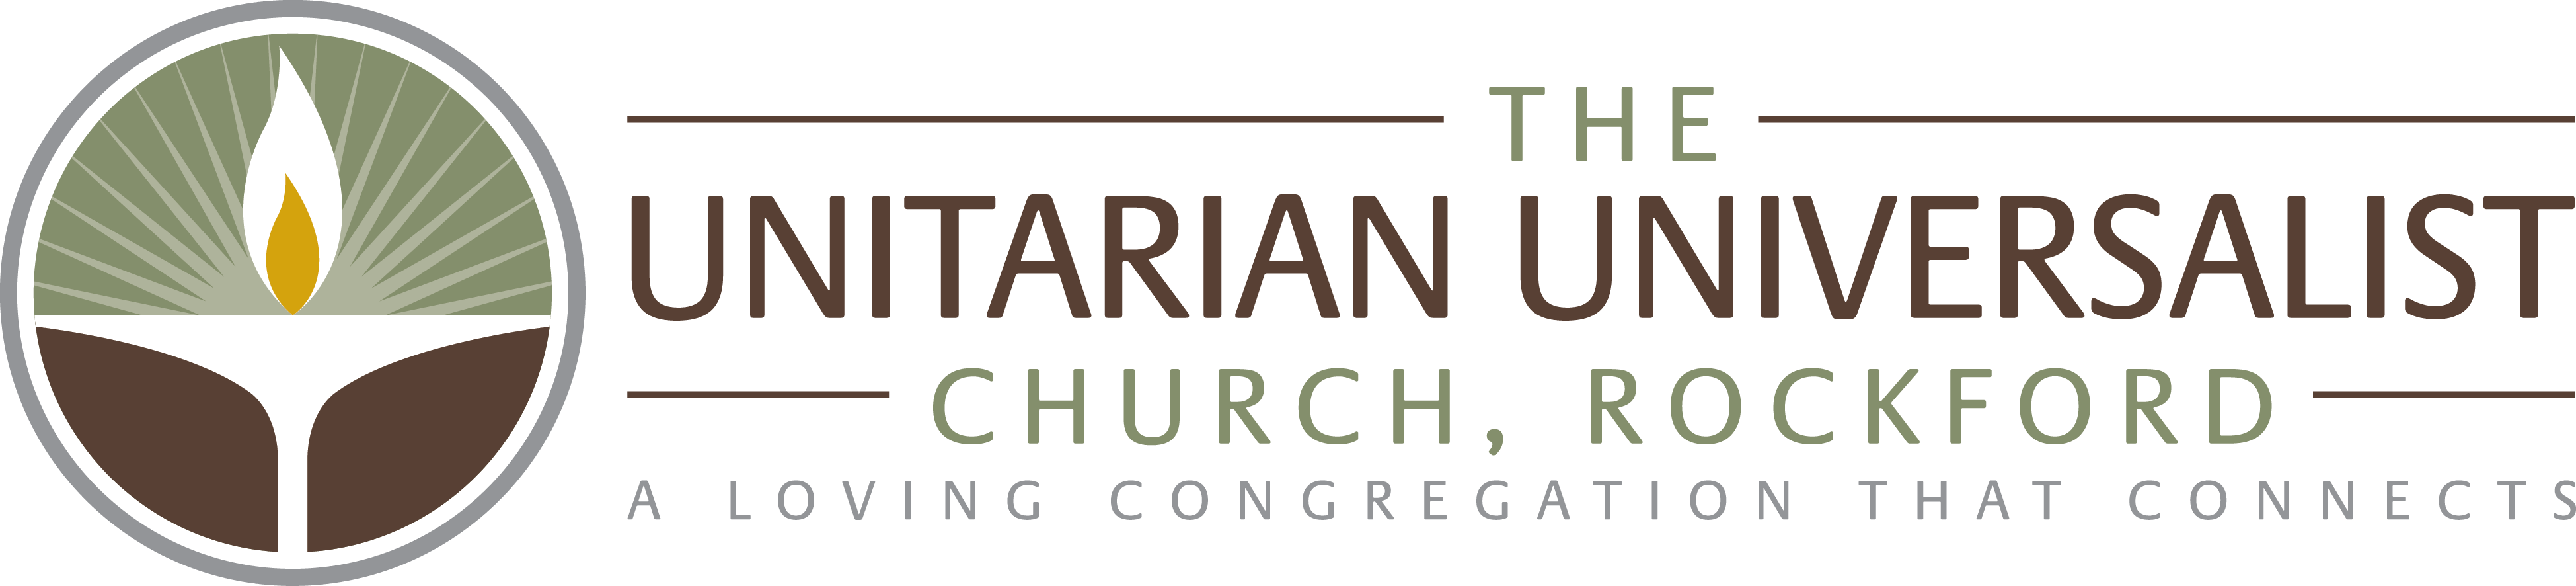 The Unitarian Universalist Church, Rockford